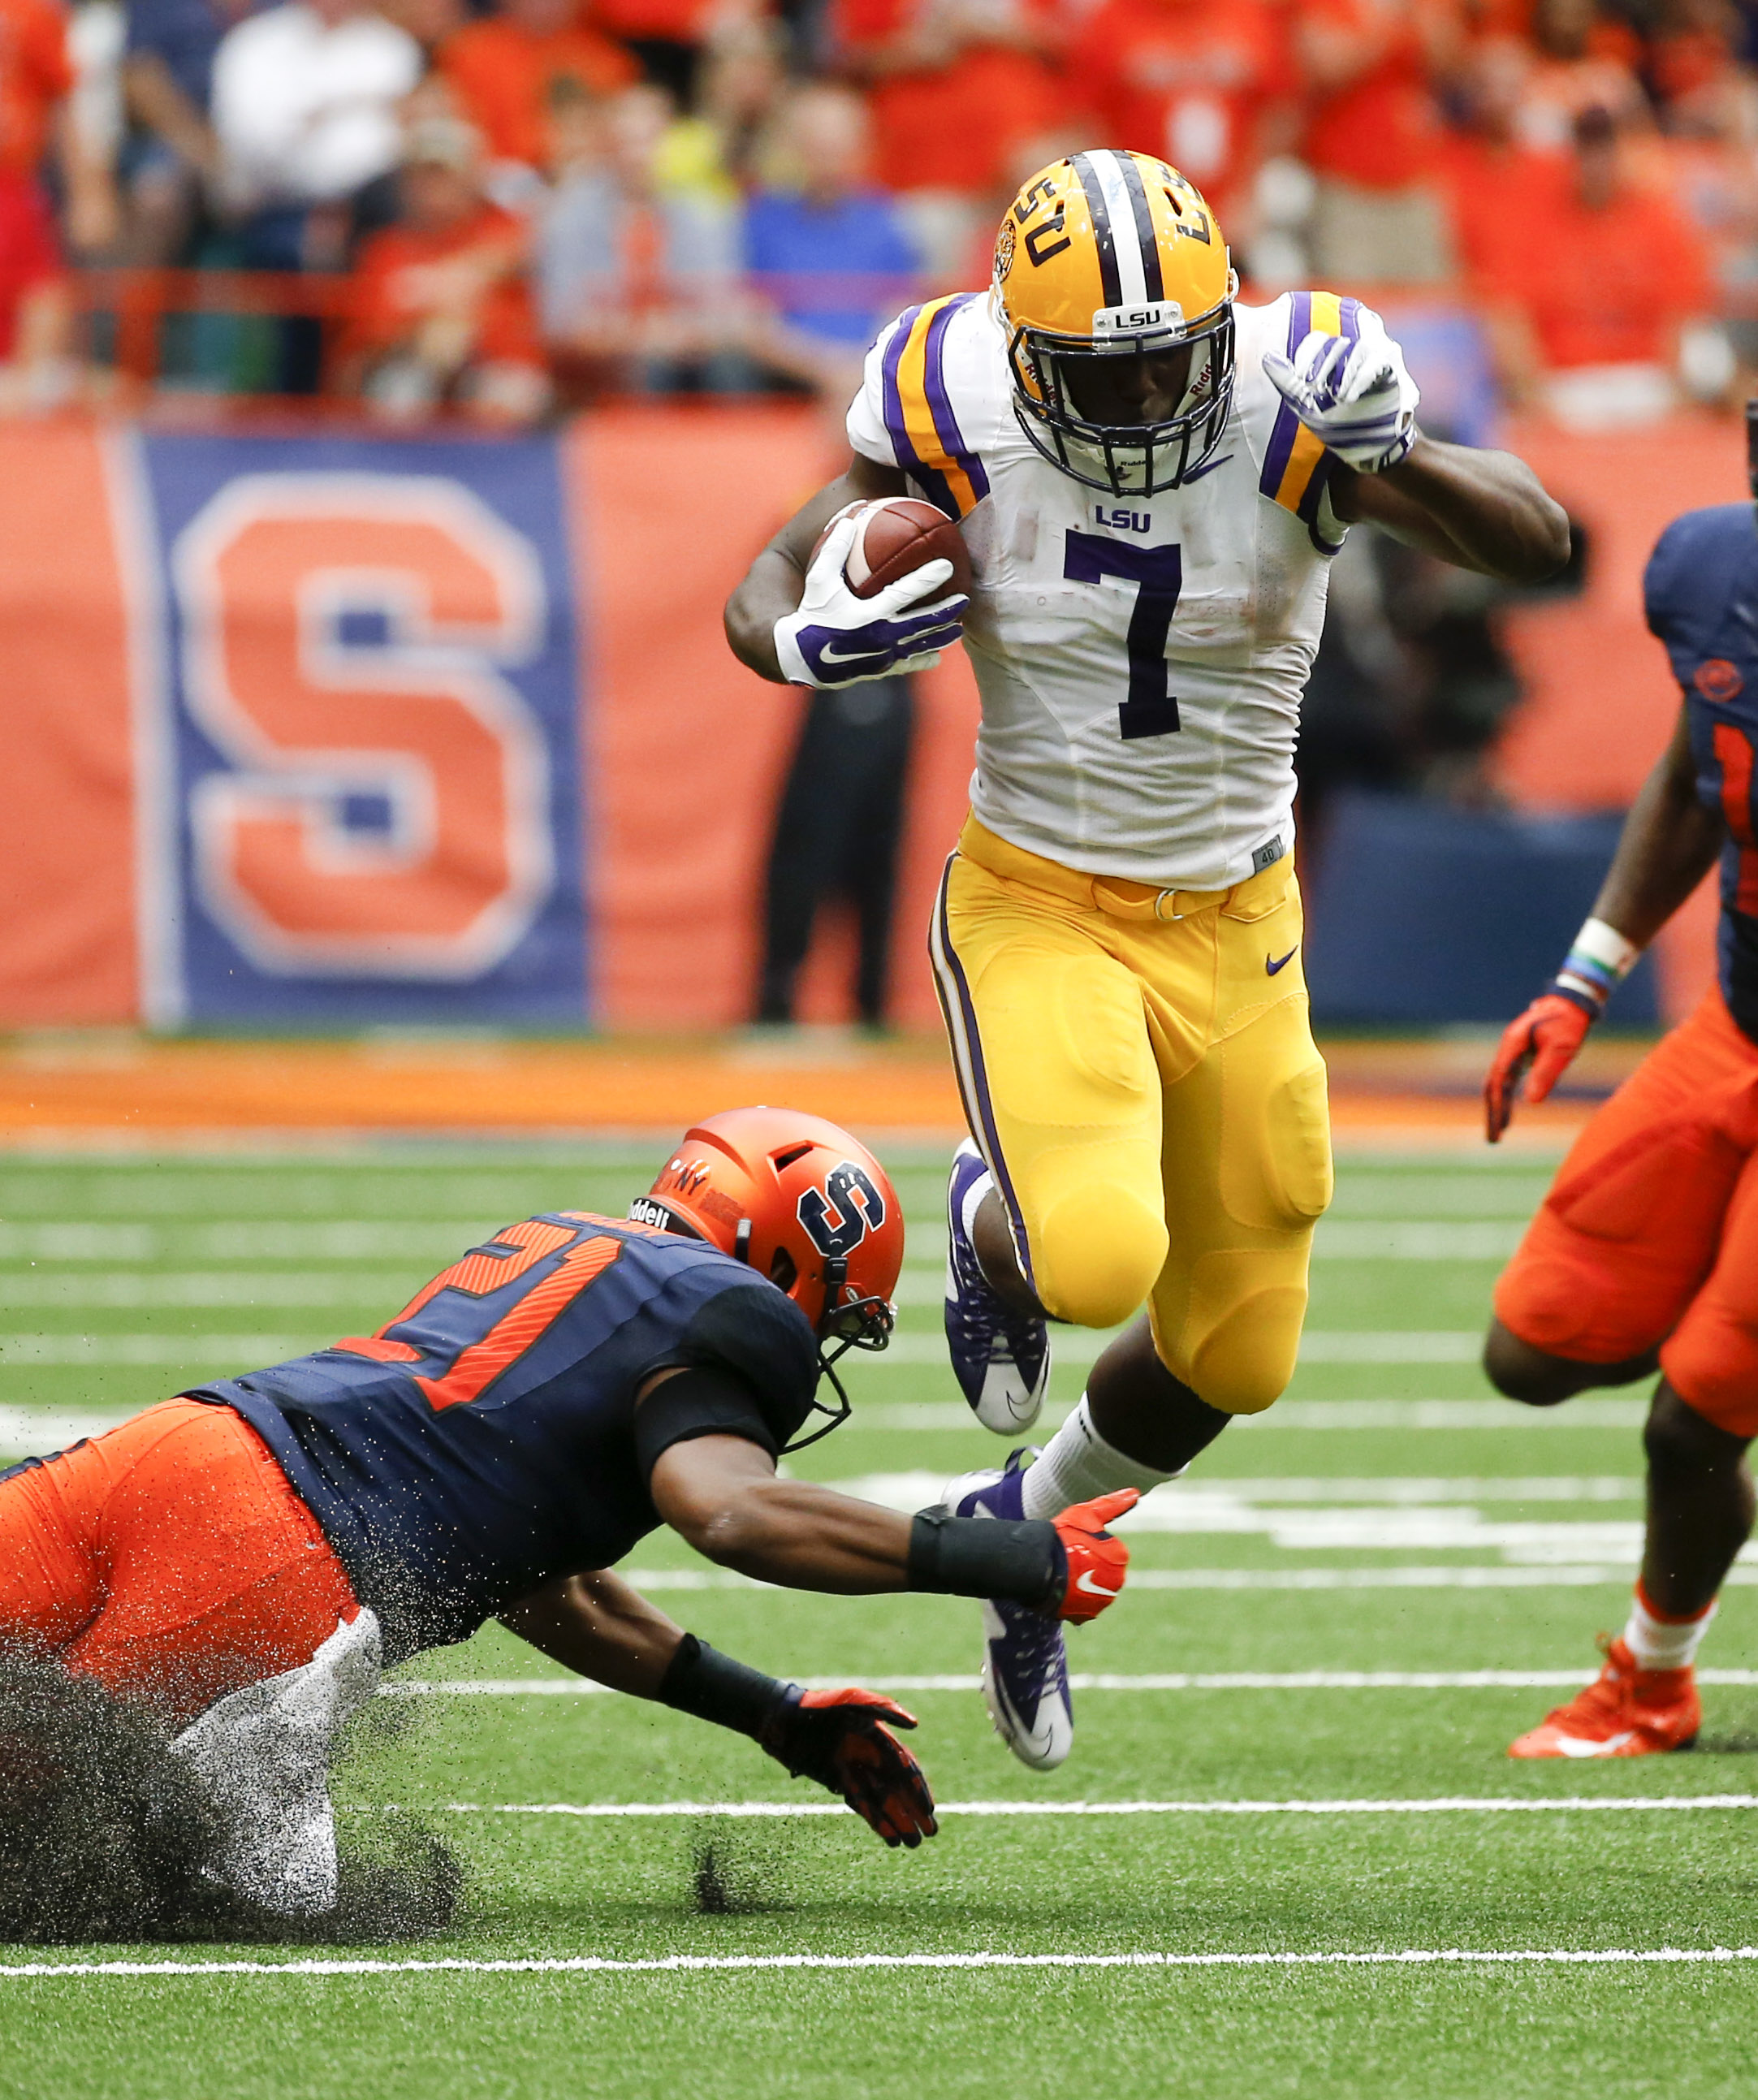 LSU running back Leonard Fournette (7) gets past Syracuse safety Chauncey Scissum (21) during the first half of an NCAA college football game on Saturday, Sept. 26, 2015, in Syracuse, N.Y. (AP Photo/Mike Groll)